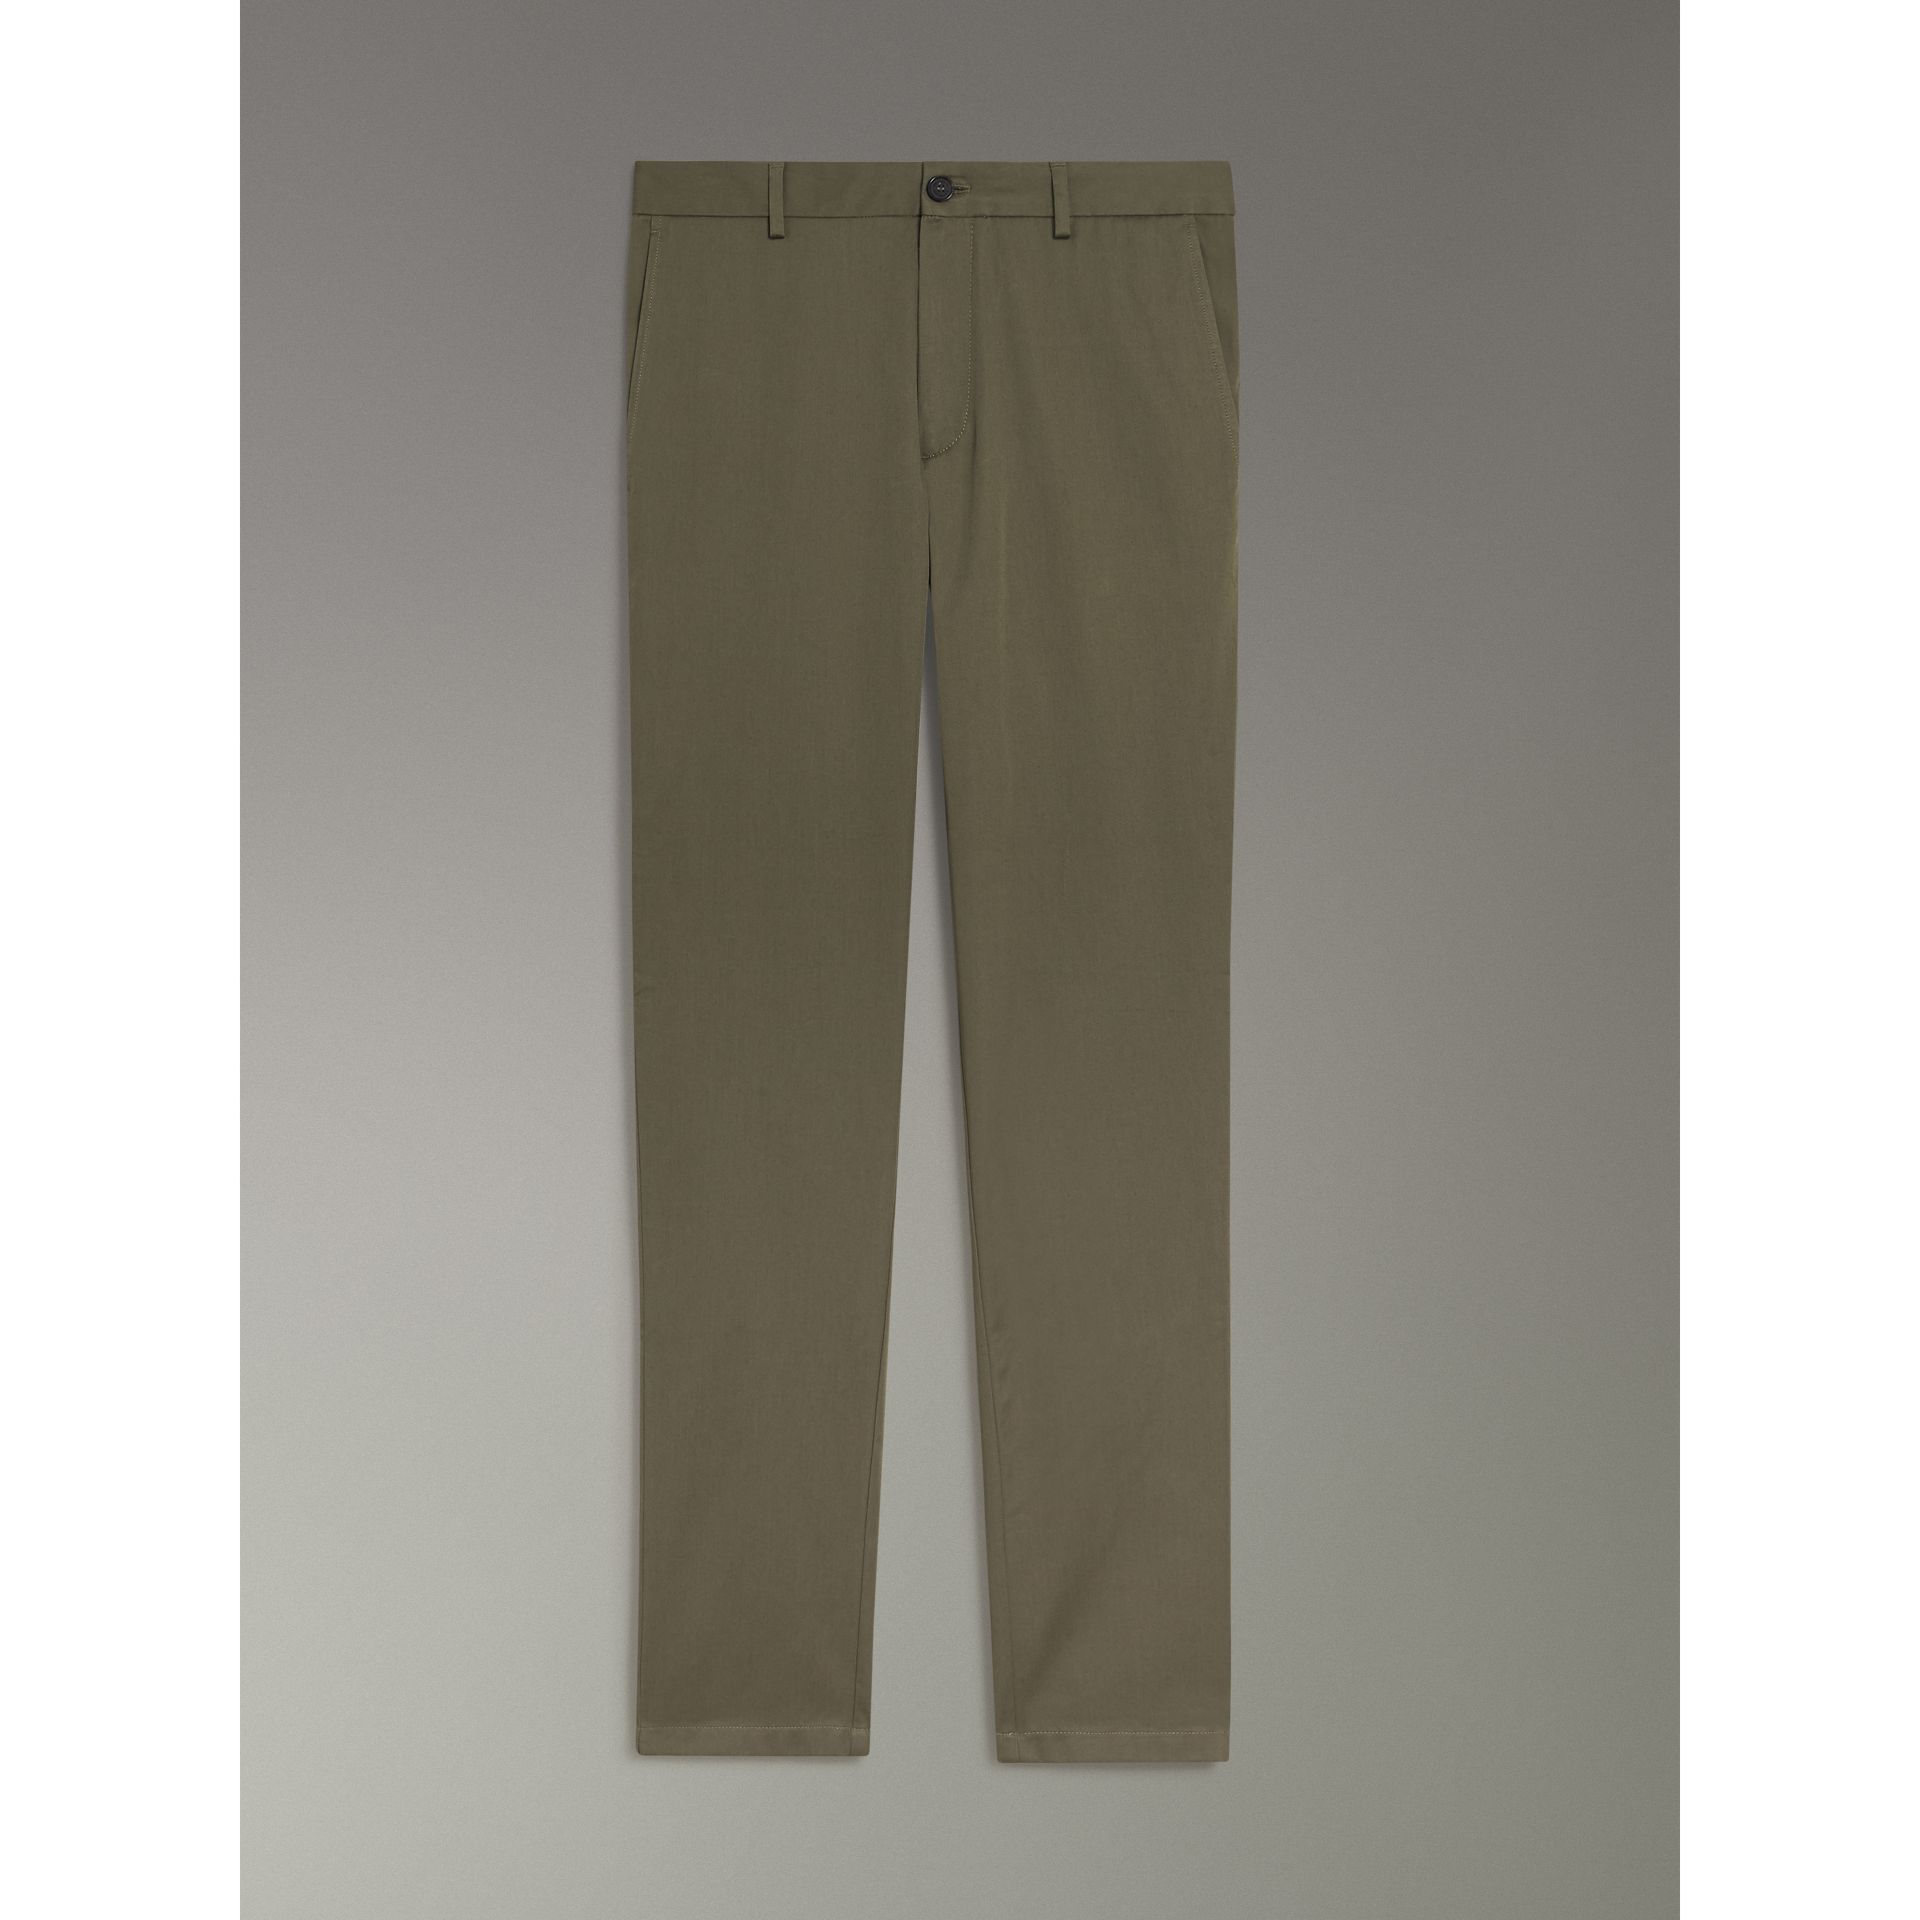 Slim Fit Cotton Chinos in Military Green - Men | Burberry Australia - gallery image 3